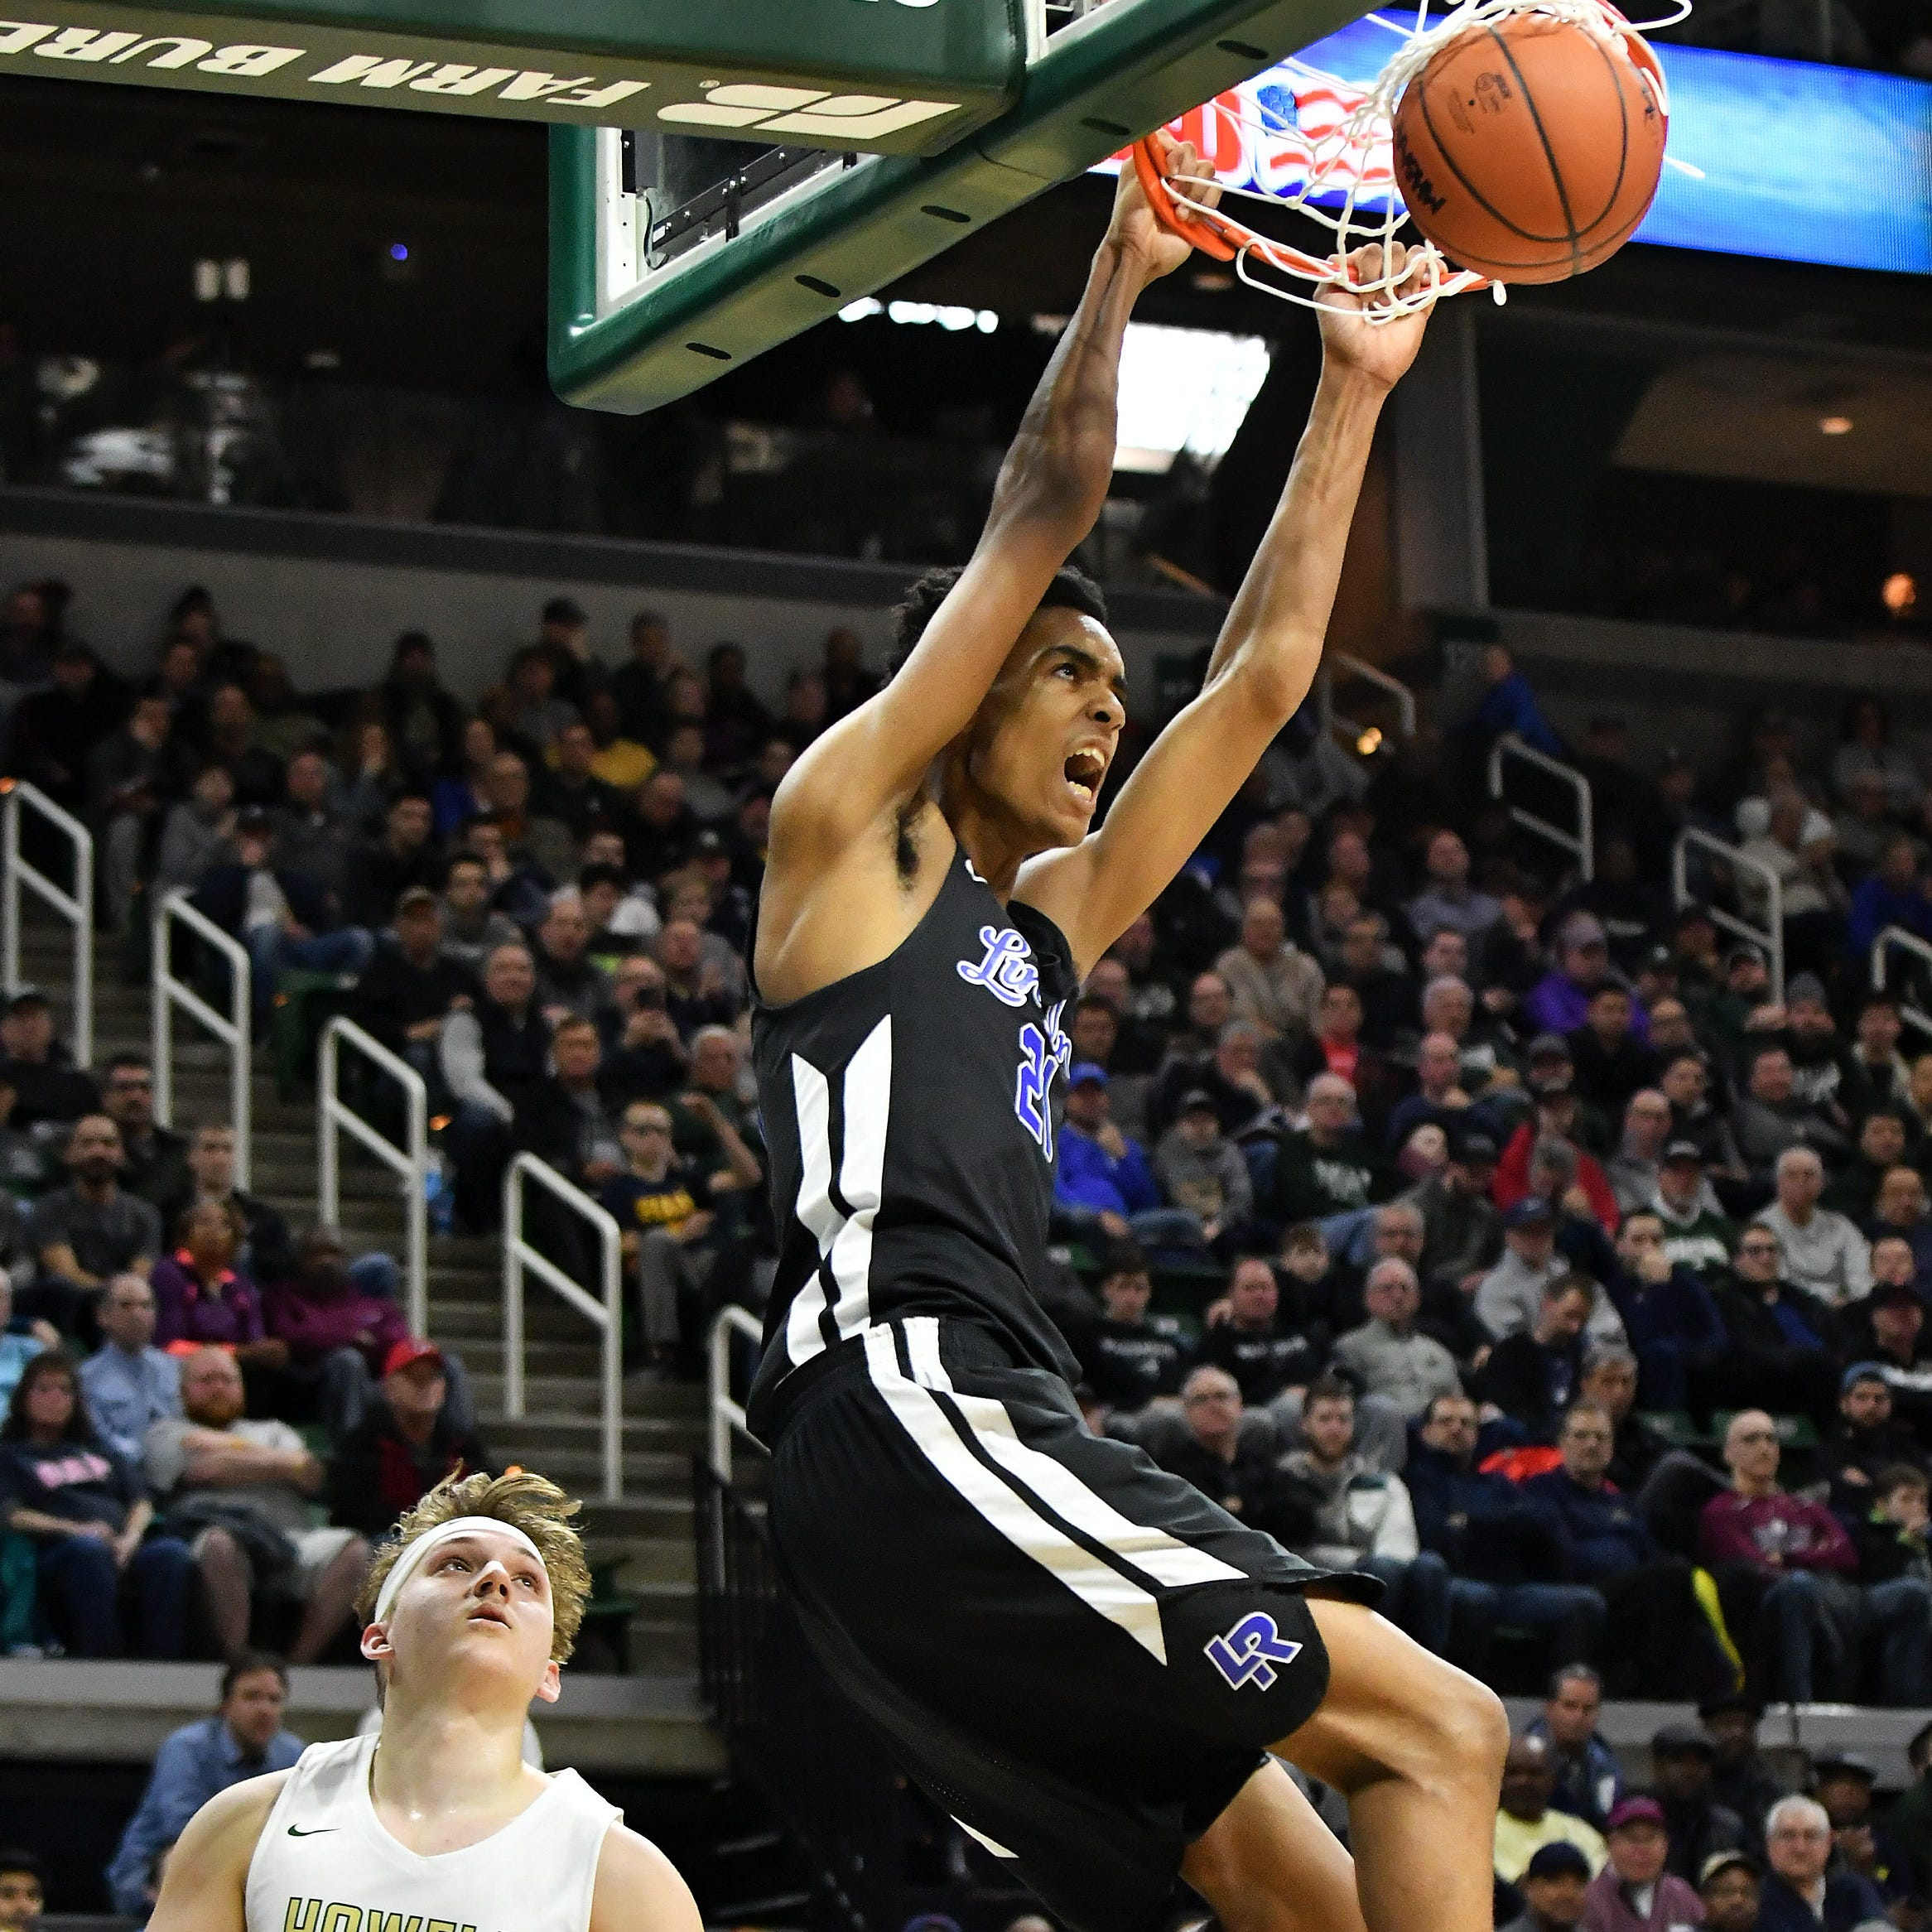 Emoni Bates powers Ypsilanti Lincoln over Howell, into Division 1 title game